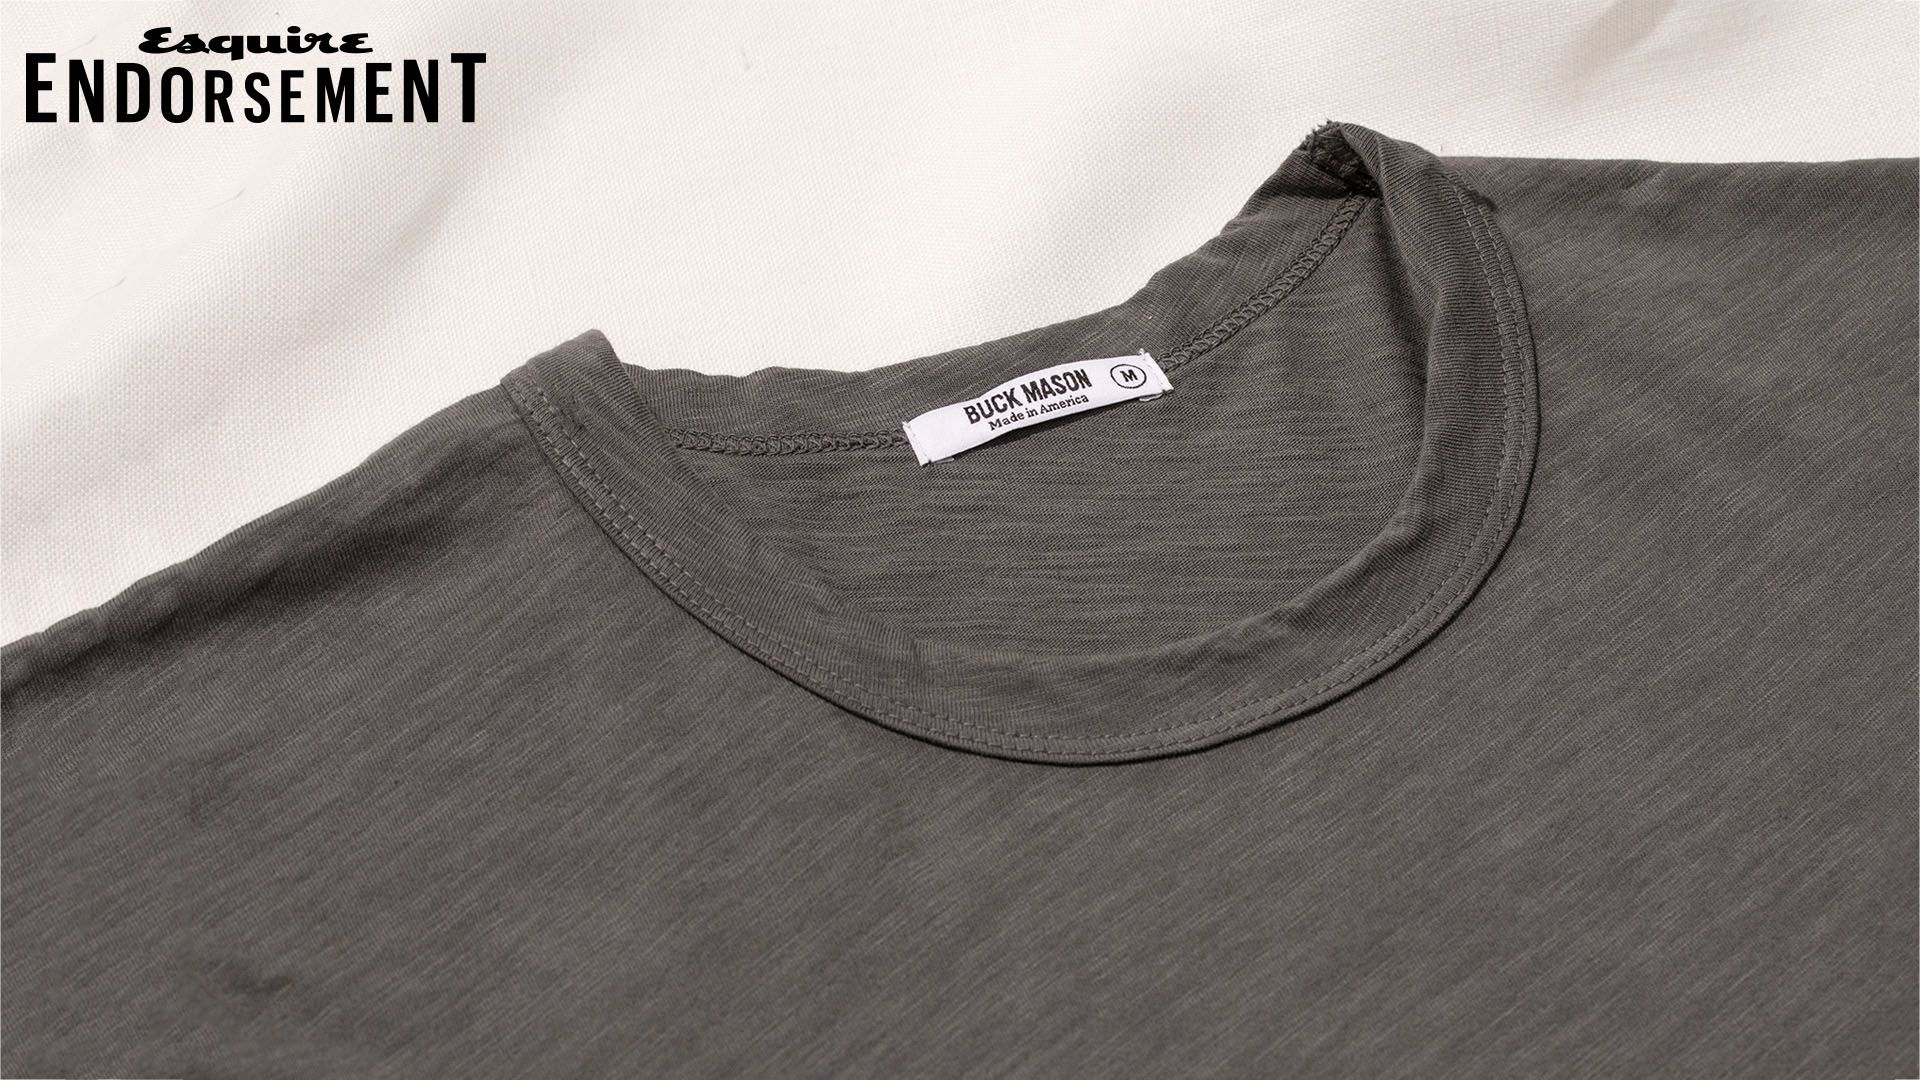 5d74e628bc76 Buck Mason Curved Hem Slub T-Shirt - The Elevated, Made-in-America T-Shirt  That's Surprisingly Affordable